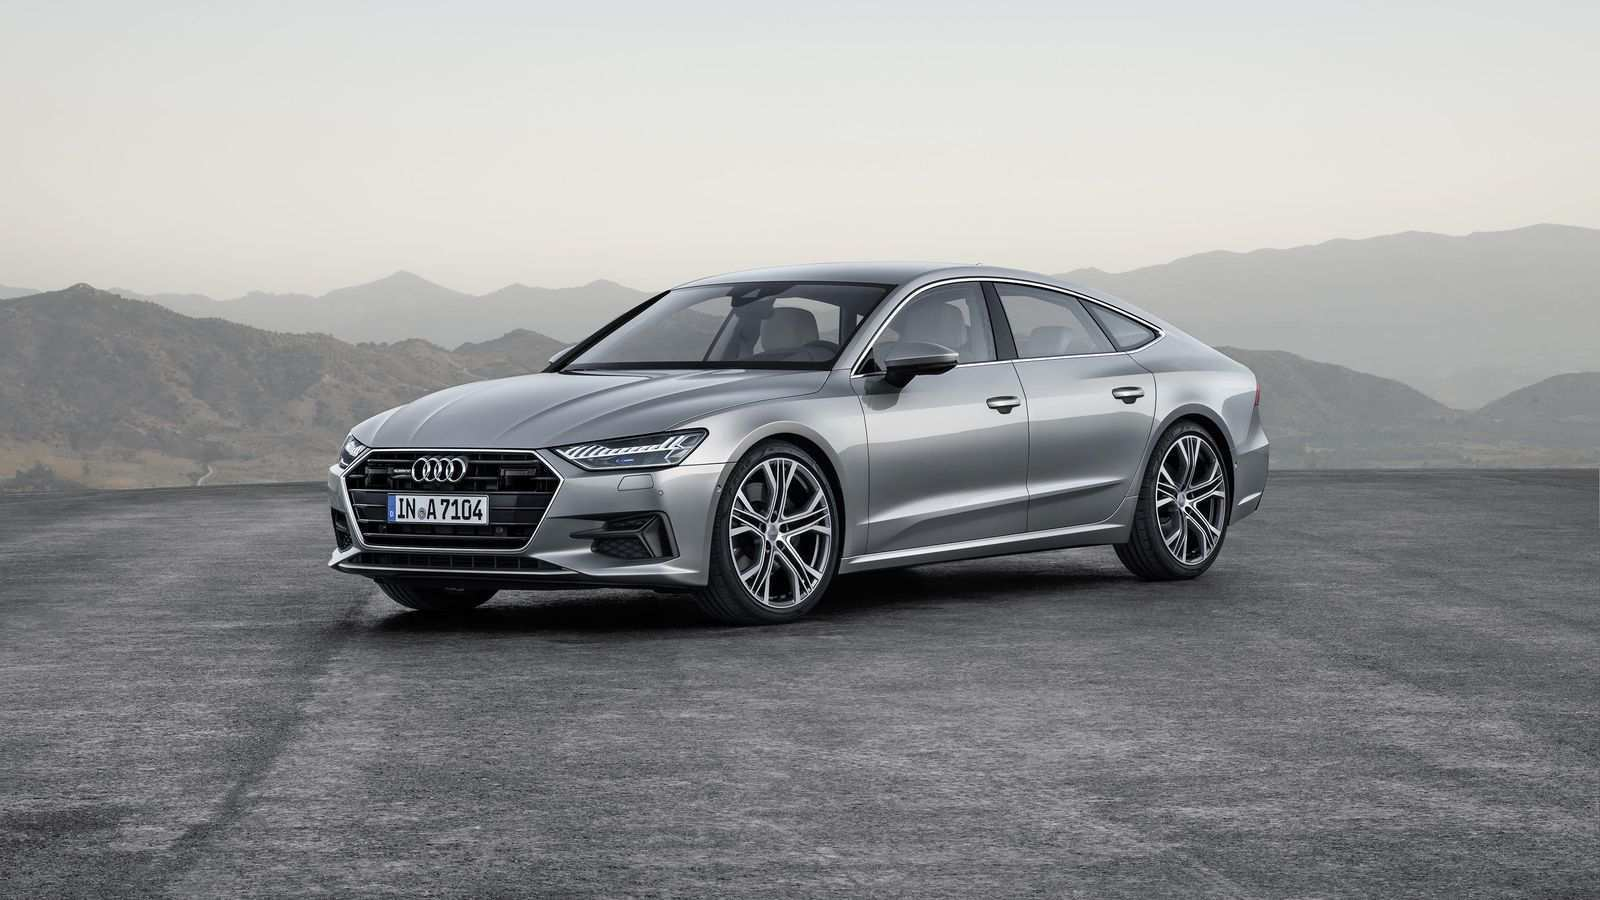 43 All New 2019 Audi A7 Debut Style